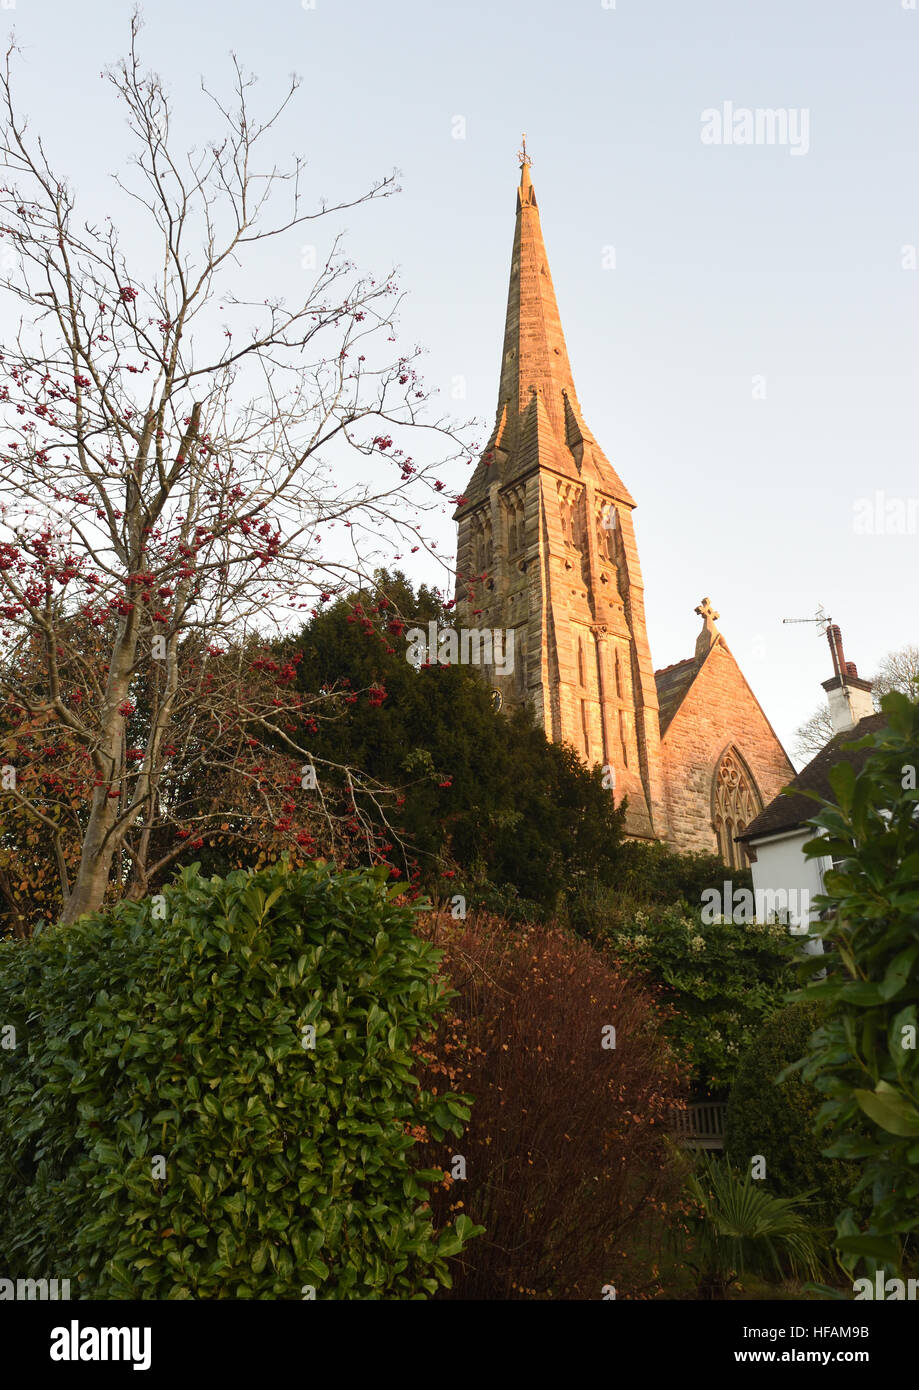 The slender stone spire of St Mark's Church,  Broadwater Down, Tunbridge Wells, Kent, UK - Stock Image